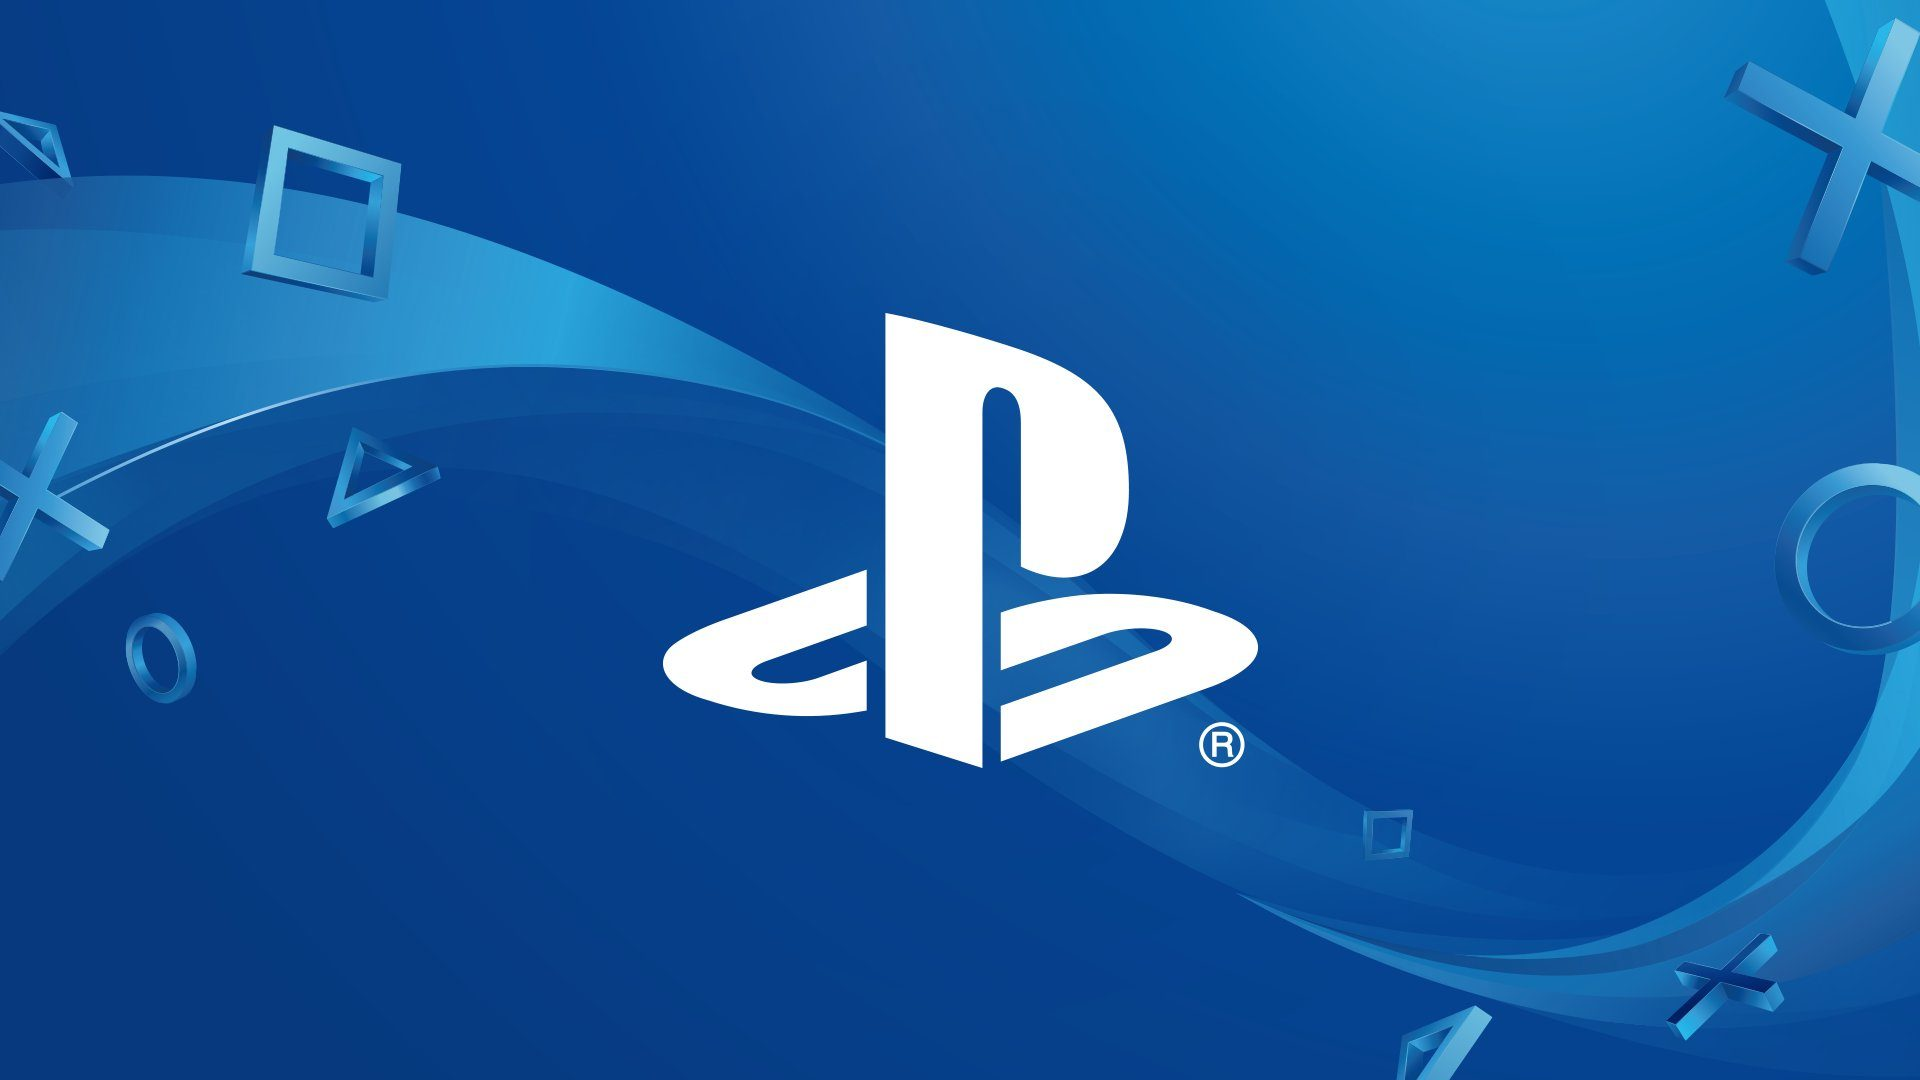 PlayStation Staff Apparently Didn't Know About the Sony and Microsoft Partnership Beforehand